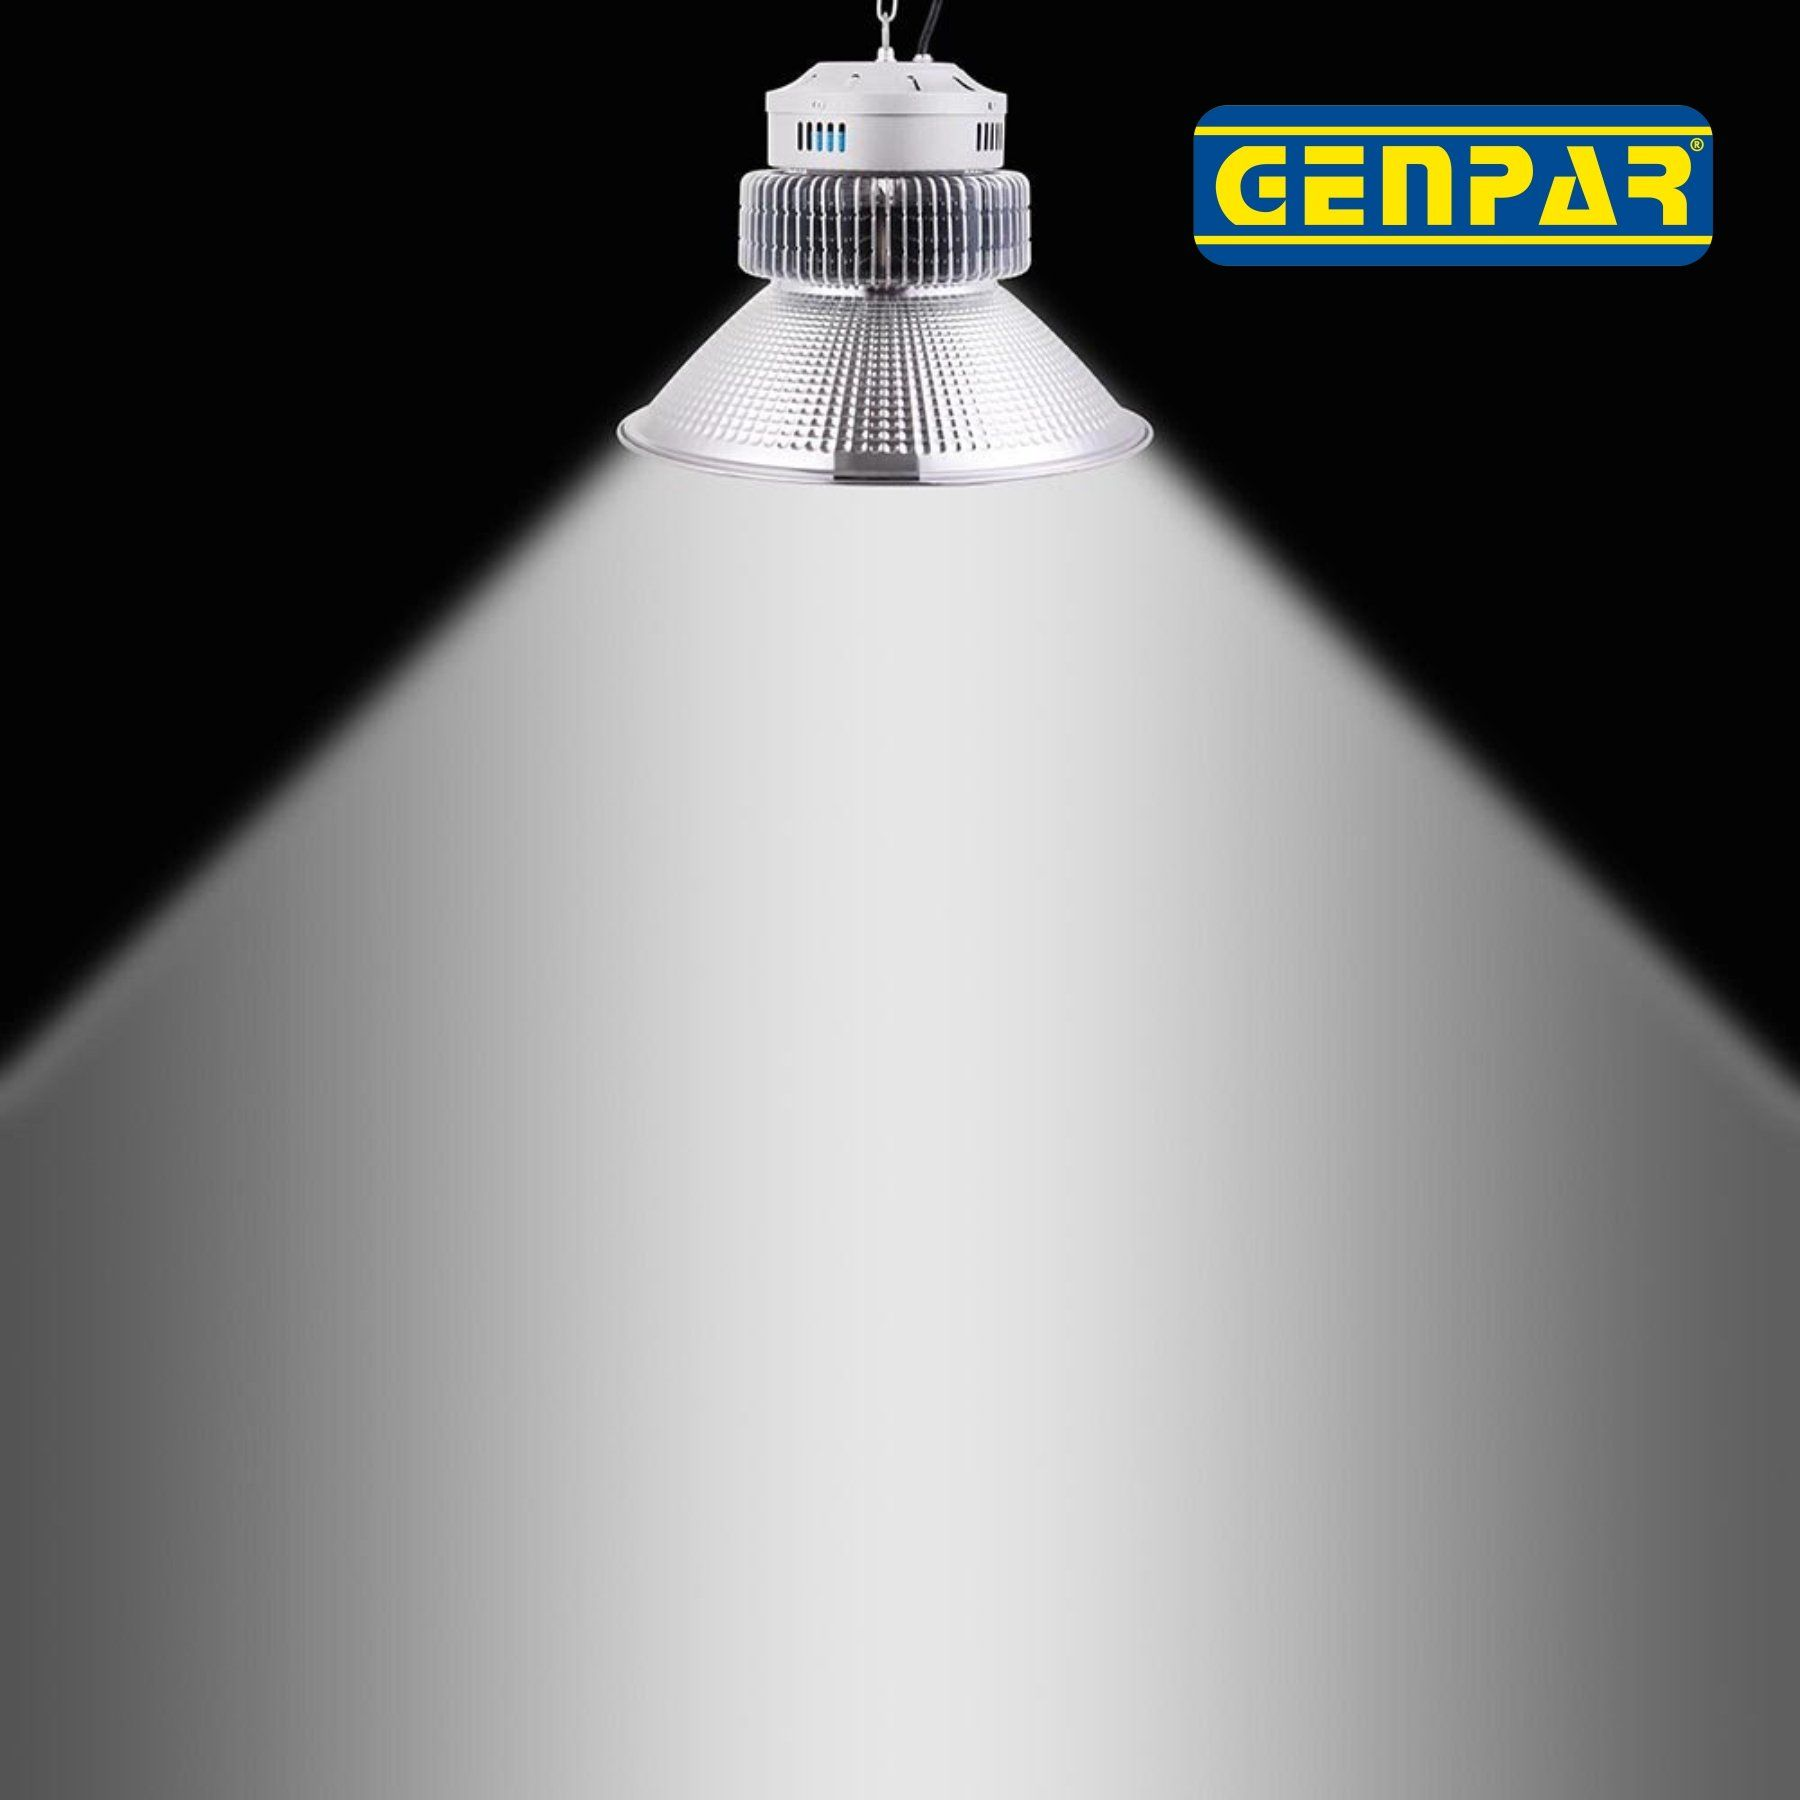 Genpar 200w High Bay Led Lighting Commercial Warehouse Hanging Industrial Grade Shop Area Workshop Garage Light Fixtures Garage Lighting High Bay Led Lighting